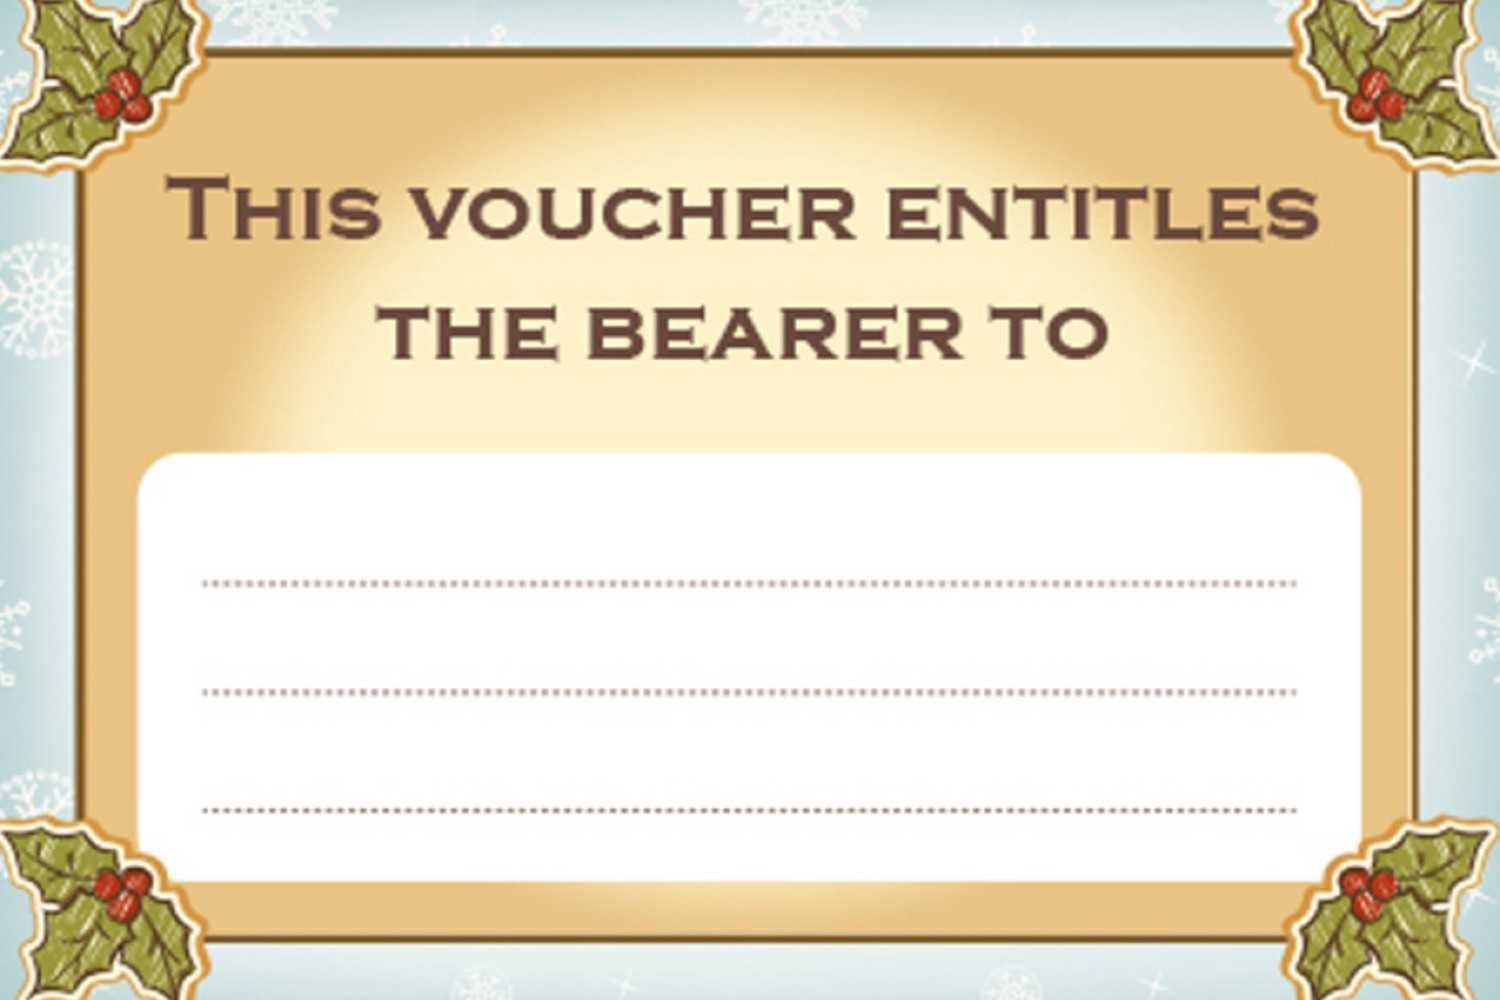 This Entitles The Bearer To Template Certificate - Zohre Intended For This Certificate Entitles The Bearer To Template